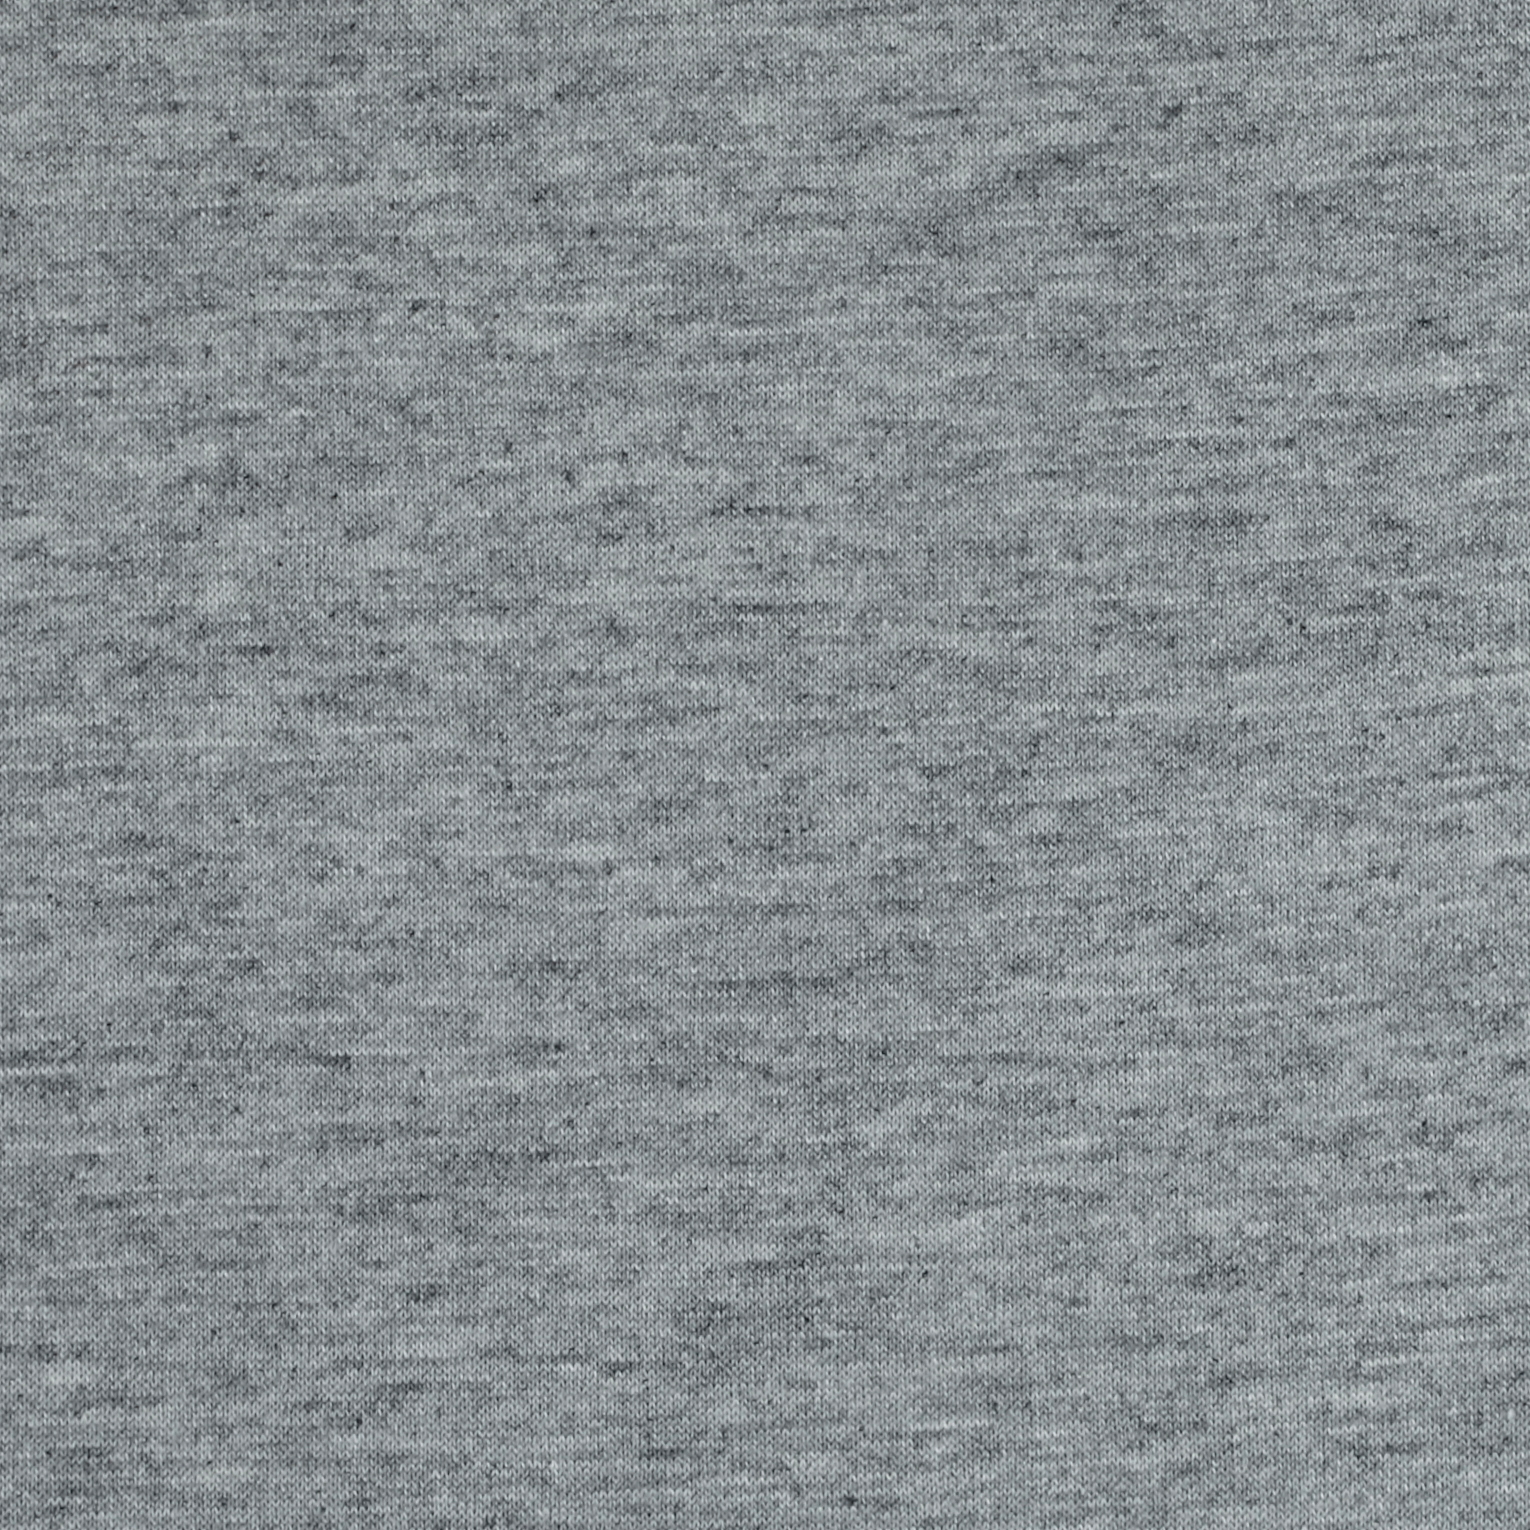 French Terry Knit Solid Light Heather Grey Fabric by Neiman in USA